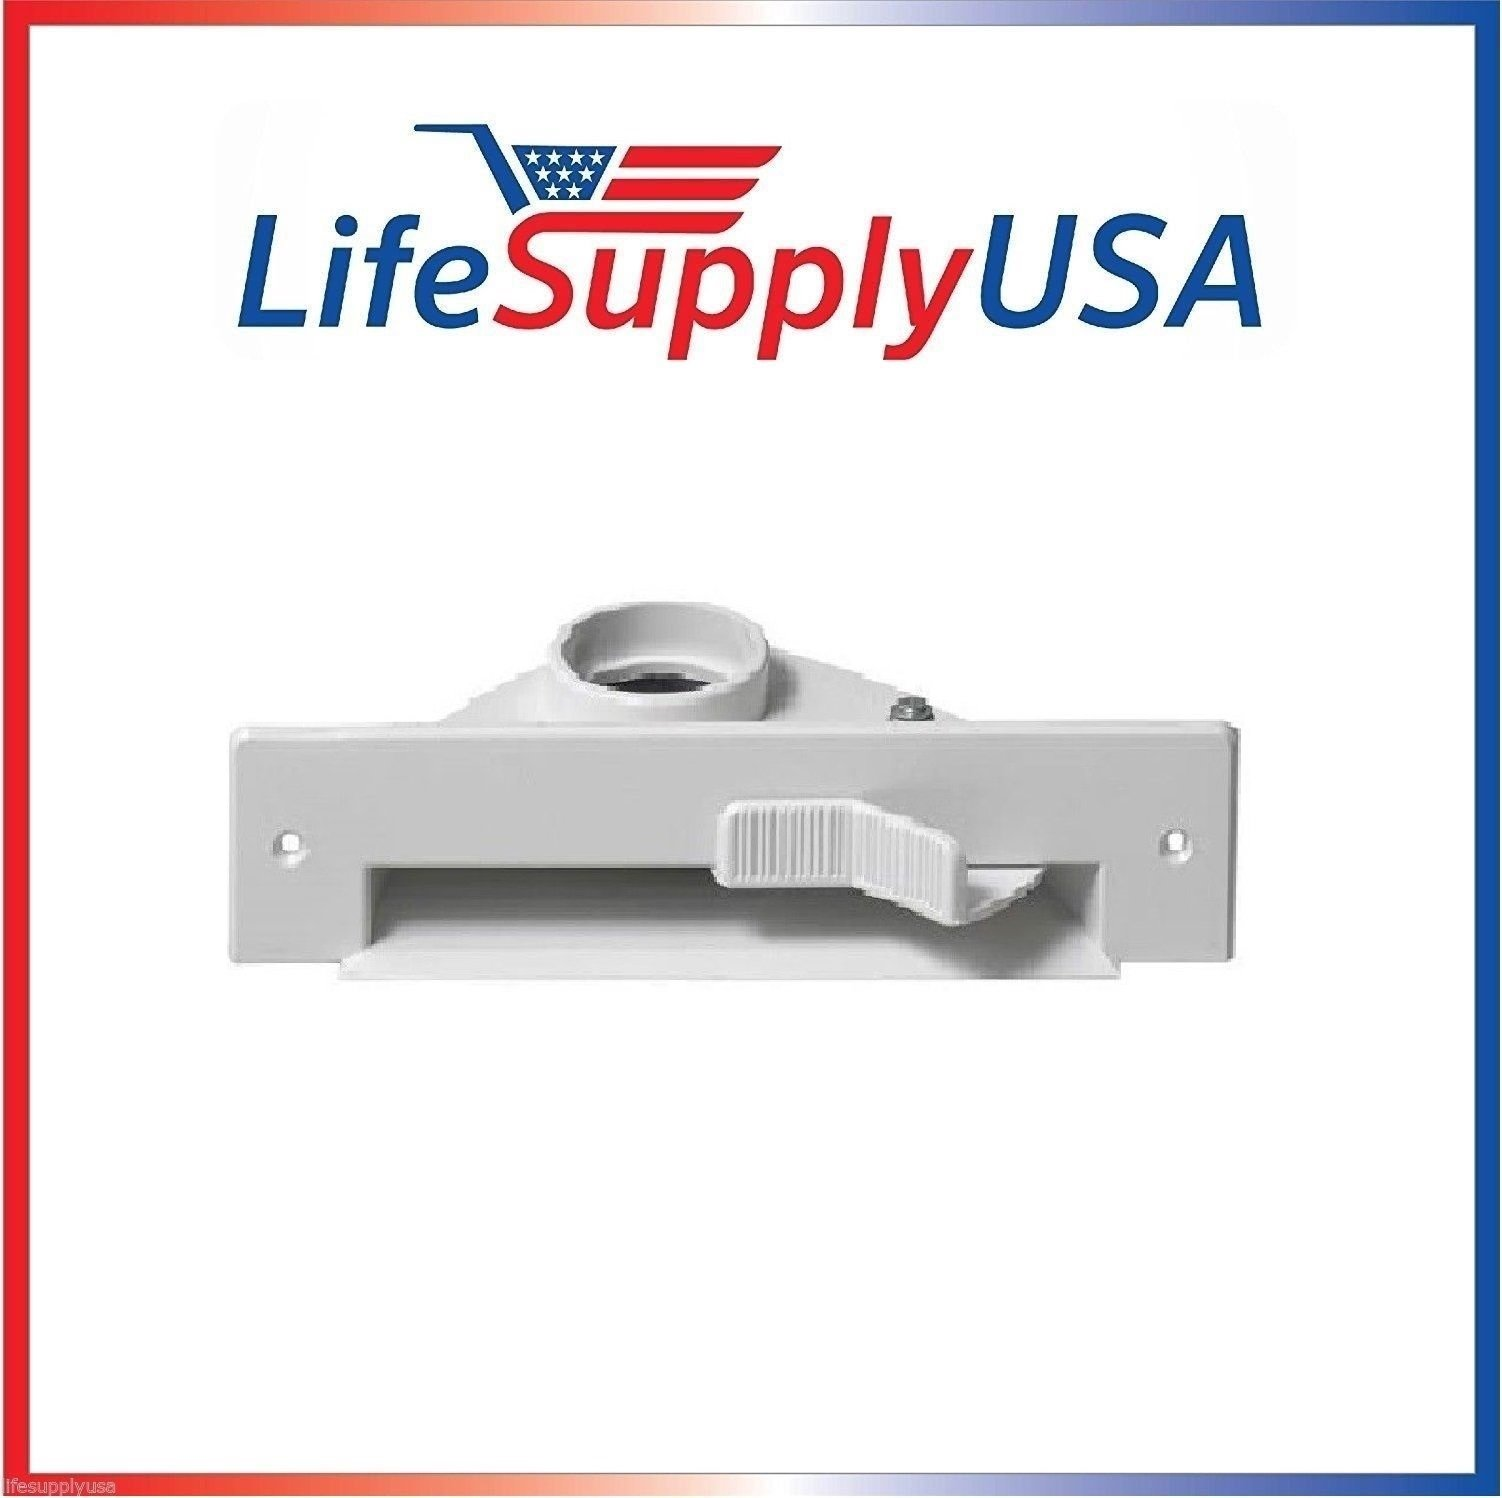 LifeSupplyUSA New Central VAC PAN Vacuum Automatic Dustpan SWEEP INLET VALVE in WHITE by